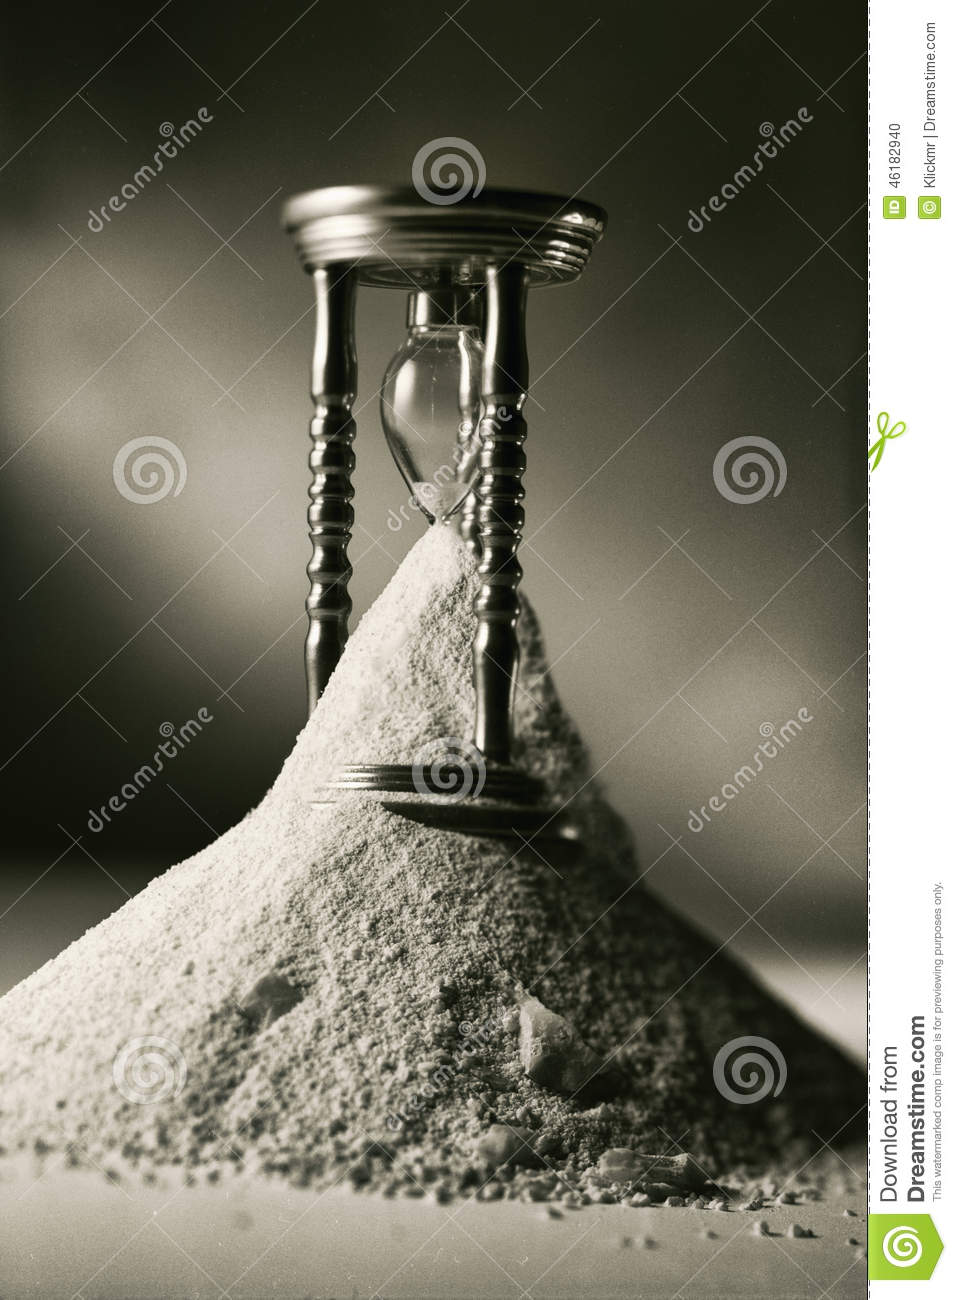 Broken hourglass  Broken Hourglass Stock Photo - Image: 46182940